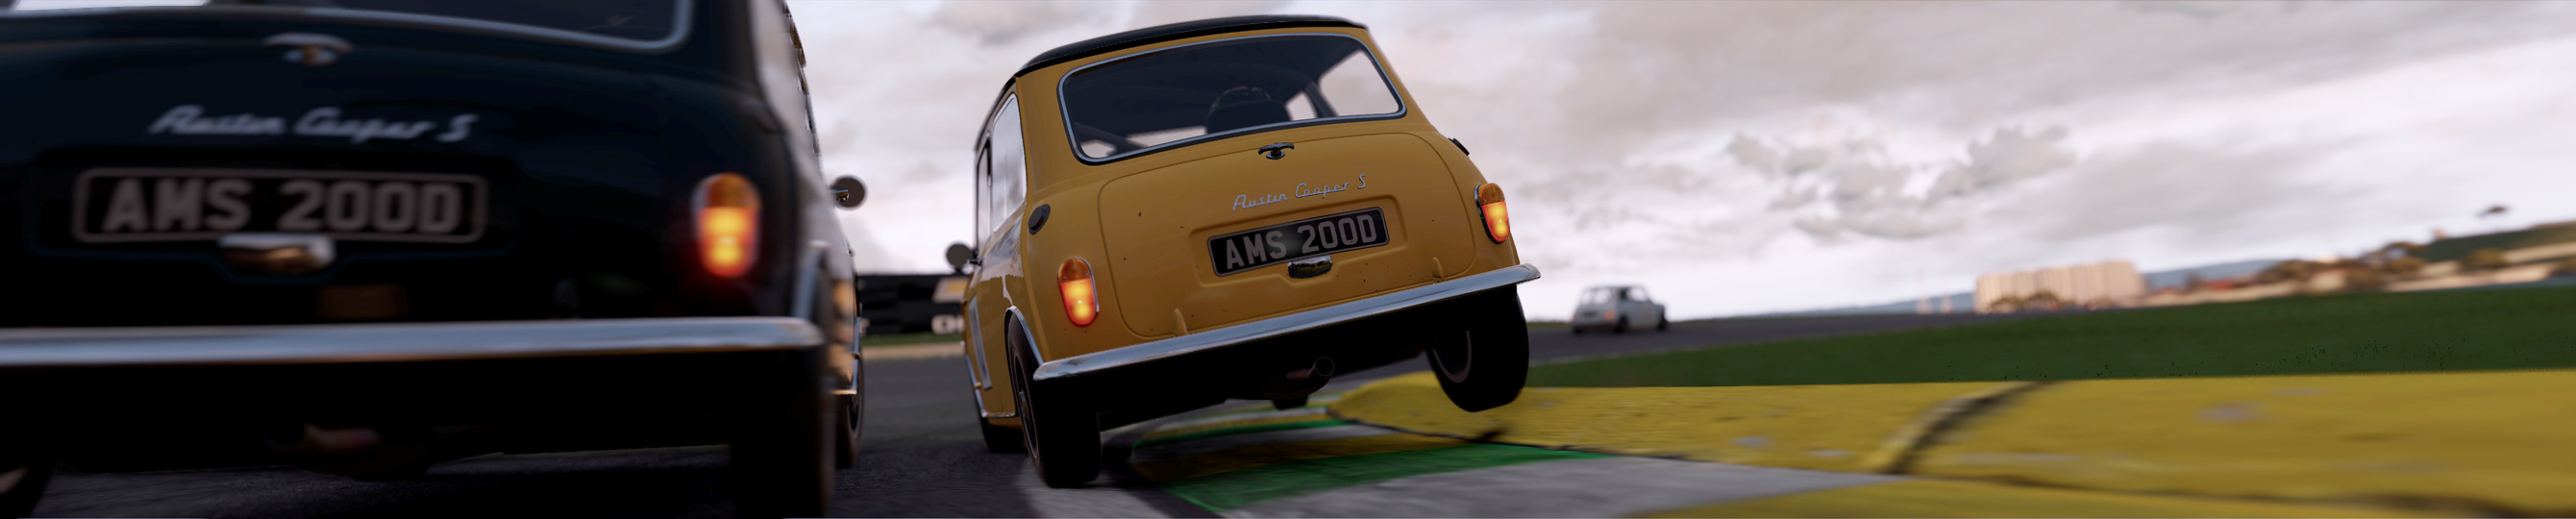 7 AMS2 MINI & BMW at INTERLAGOS crop copy.jpg